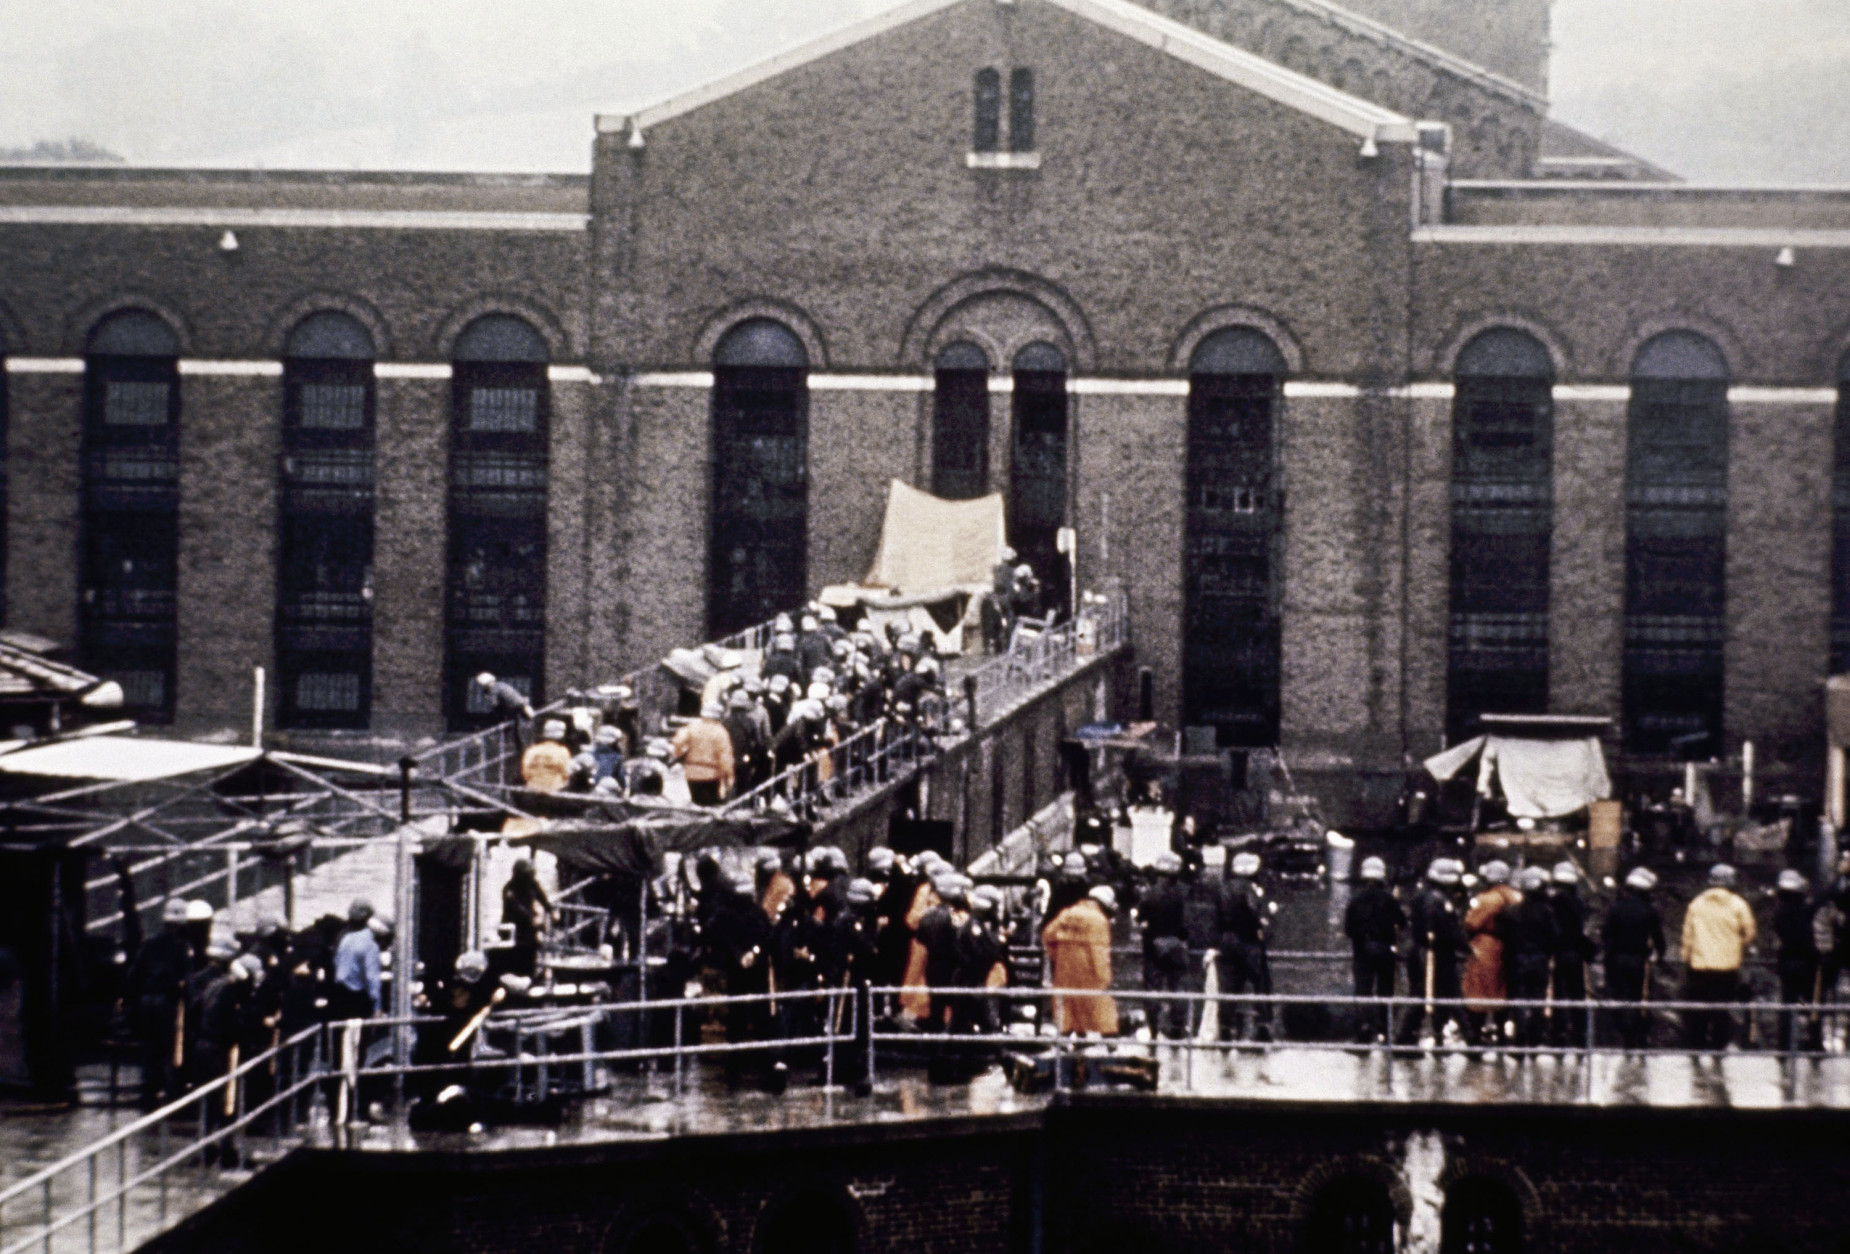 On this date in 1971, prisoners seized control of the maximum-security Attica Correctional Facility near Buffalo, New York, beginning a siege that ended up claiming 43 lives. Here, shotgun carrying New York State troopers and prison guards mill outside Attica State Prison on Sept. 13, 1971. (AP Photo)